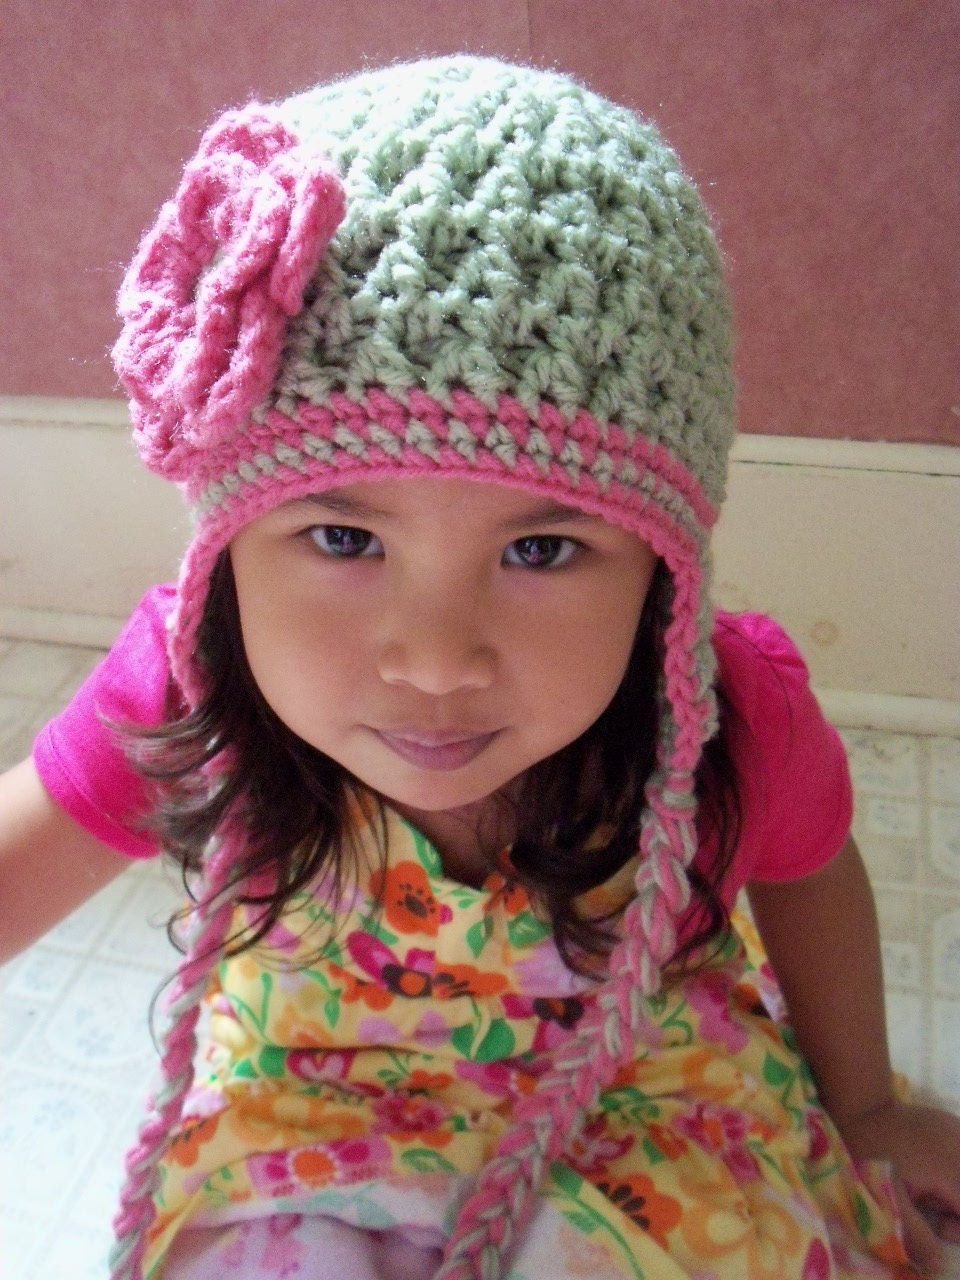 Crochet Patterns Hats For Toddlers : Crochet Children HatToddler Hat Baby Girl Hat Crochet